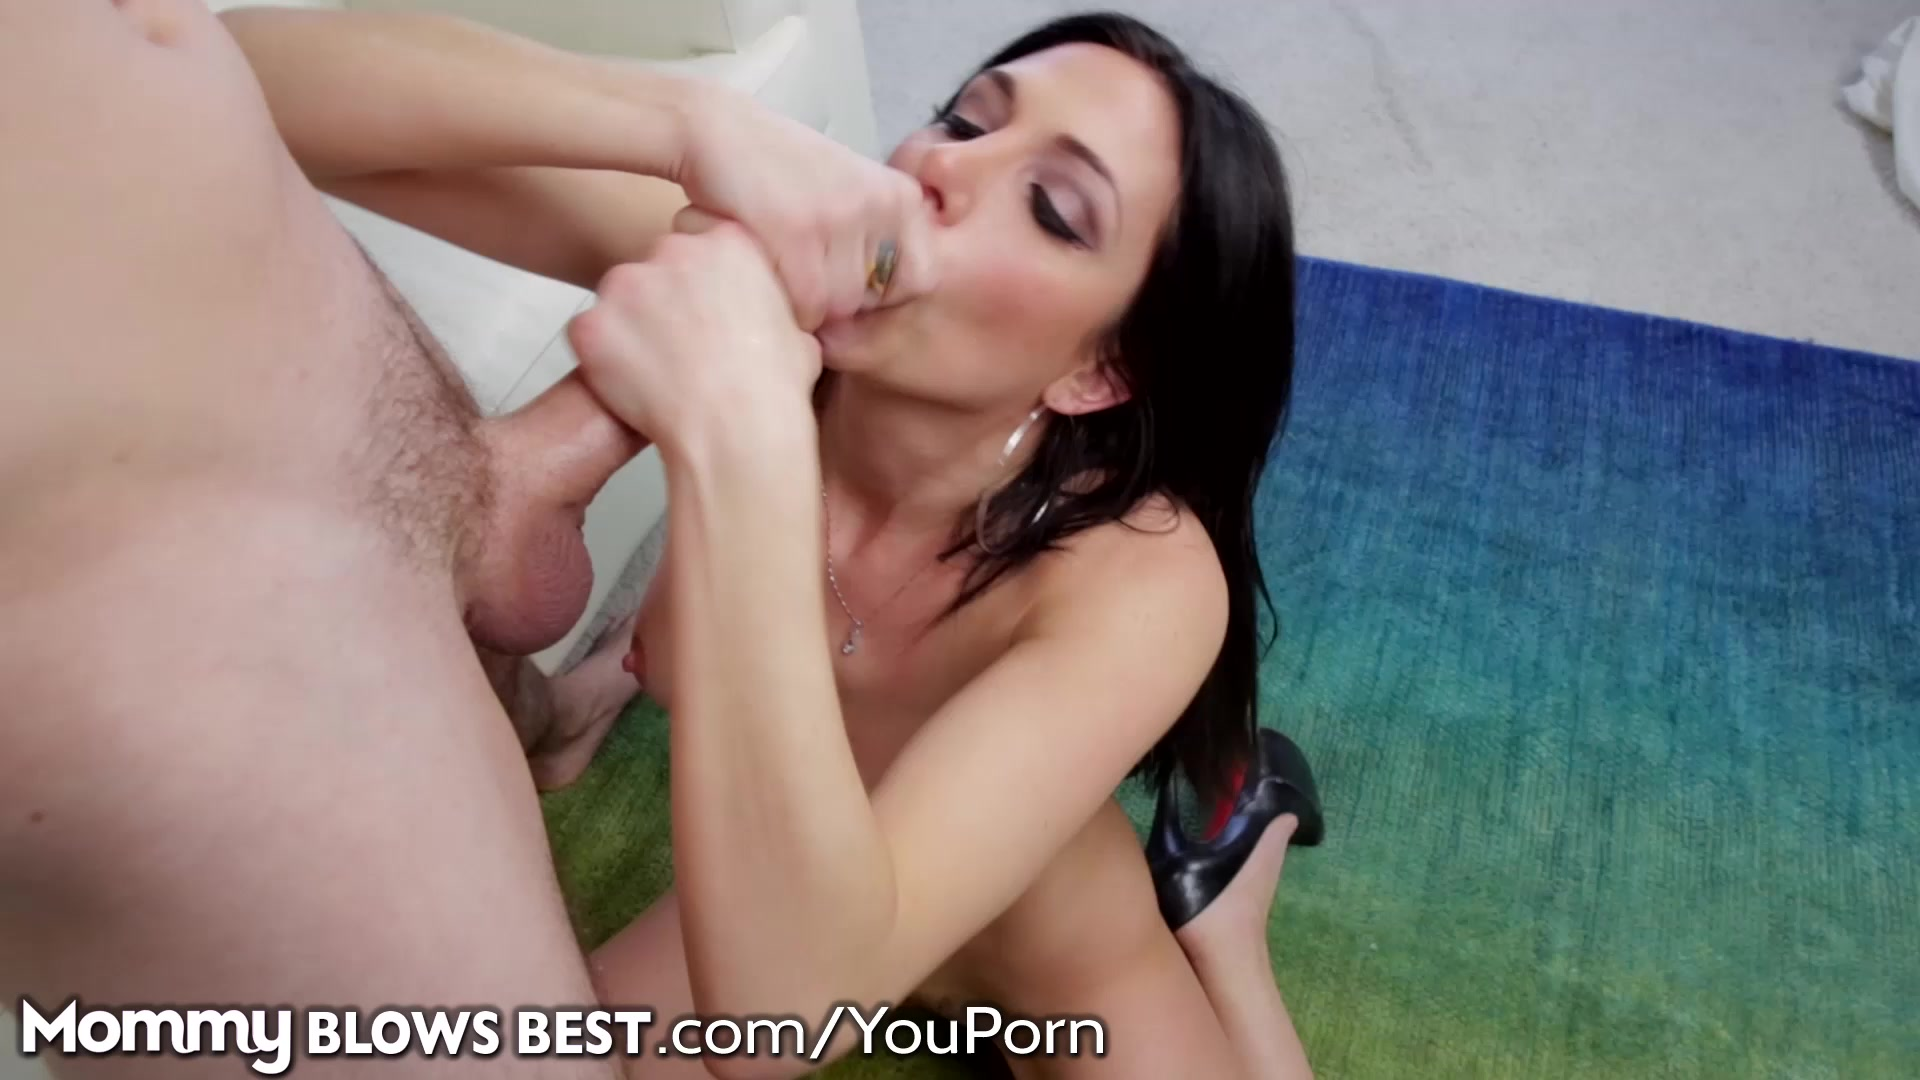 Free strap on porn streaming